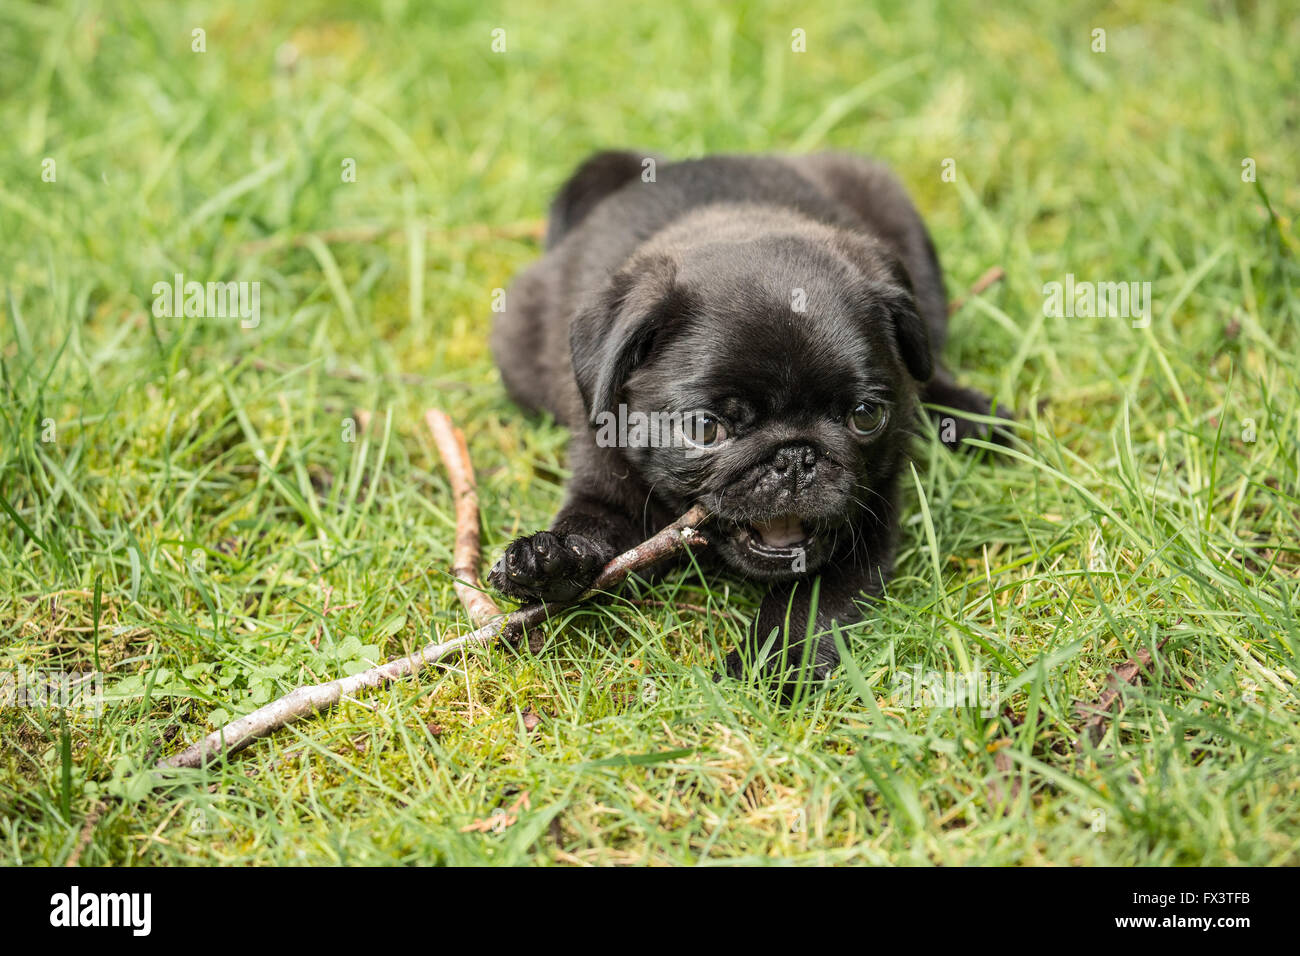 Fitzgerald, a 10 week old black Pug puppy chewing on a stick while resting on the lawn in Issaquah, Washington, - Stock Image